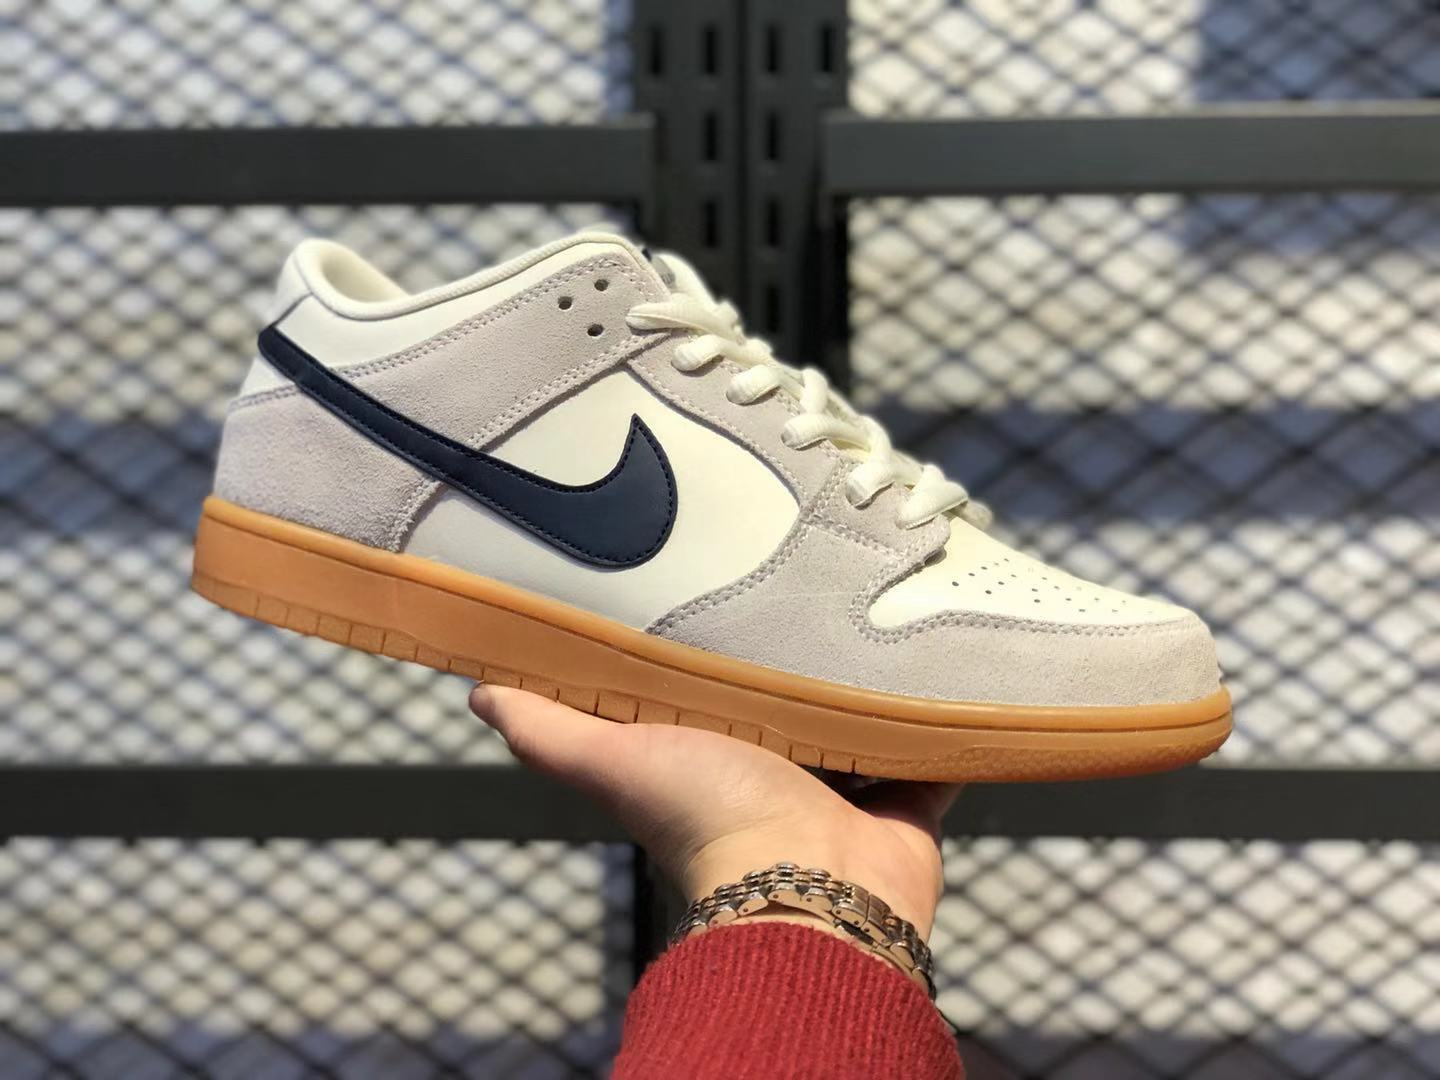 Nike SB Dunk Low Grey/Cream White-Black Lifestyle Shoes In Stock 854866-107